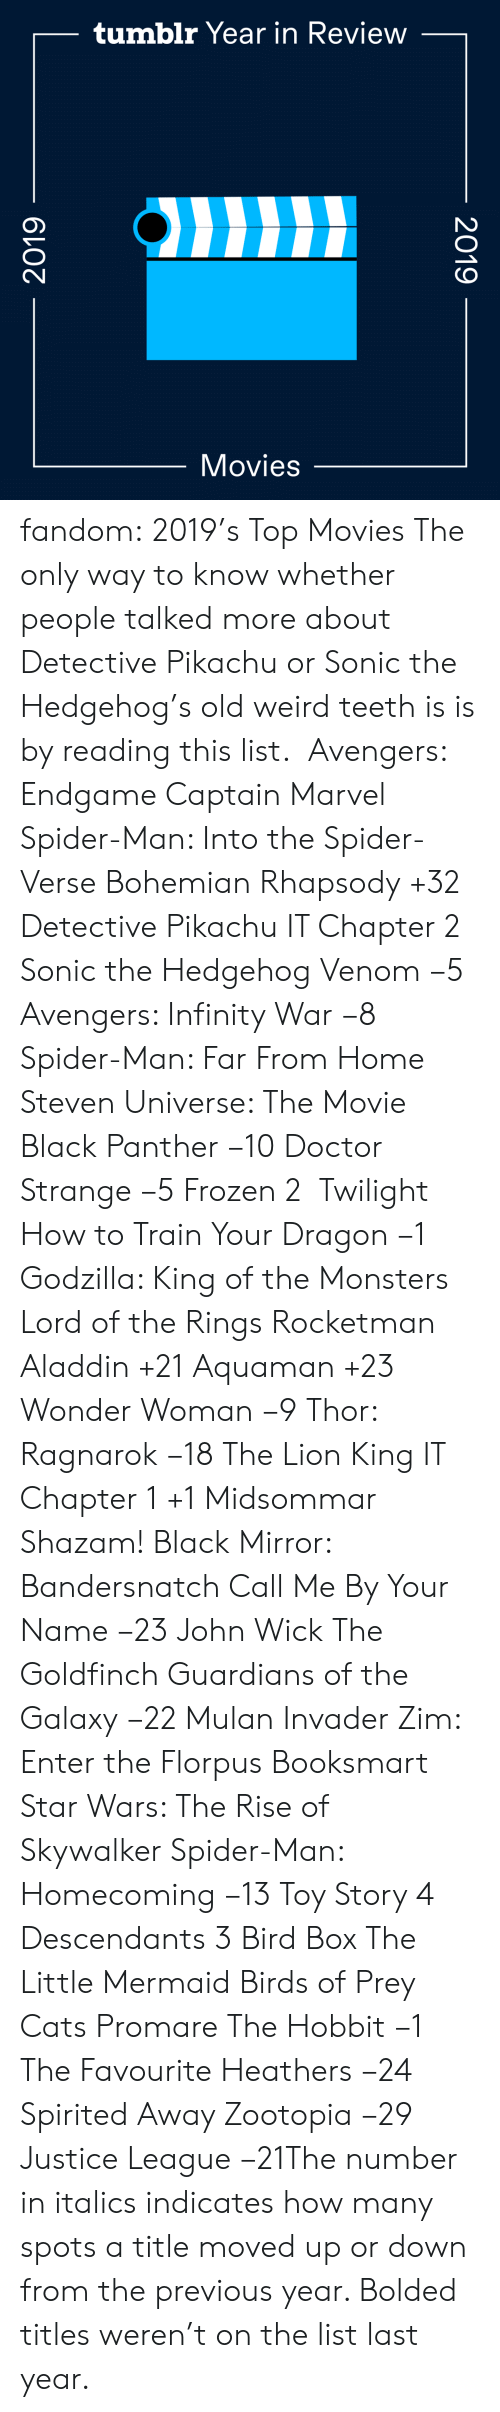 Moved: tumblr Year in Review  Movies  2019  2019 fandom:  2019's Top Movies  The only way to know whether people talked more about Detective Pikachu or Sonic the Hedgehog's old weird teeth is is by reading this list.   Avengers: Endgame  Captain Marvel  Spider-Man: Into the Spider-Verse  Bohemian Rhapsody +32  Detective Pikachu  IT Chapter 2  Sonic the Hedgehog  Venom −5  Avengers: Infinity War −8  Spider-Man: Far From Home  Steven Universe: The Movie  Black Panther −10  Doctor Strange −5  Frozen 2   Twilight  How to Train Your Dragon −1  Godzilla: King of the Monsters  Lord of the Rings  Rocketman  Aladdin +21  Aquaman +23  Wonder Woman −9  Thor: Ragnarok −18  The Lion King  IT Chapter 1 +1  Midsommar  Shazam!  Black Mirror: Bandersnatch  Call Me By Your Name −23  John Wick  The Goldfinch  Guardians of the Galaxy −22  Mulan  Invader Zim: Enter the Florpus  Booksmart  Star Wars: The Rise of Skywalker  Spider-Man: Homecoming −13  Toy Story 4  Descendants 3  Bird Box  The Little Mermaid  Birds of Prey  Cats  Promare  The Hobbit −1  The Favourite  Heathers −24  Spirited Away  Zootopia −29 Justice League −21The number in italics indicates how many spots a title moved up or down from the previous year. Bolded titles weren't on the list last year.